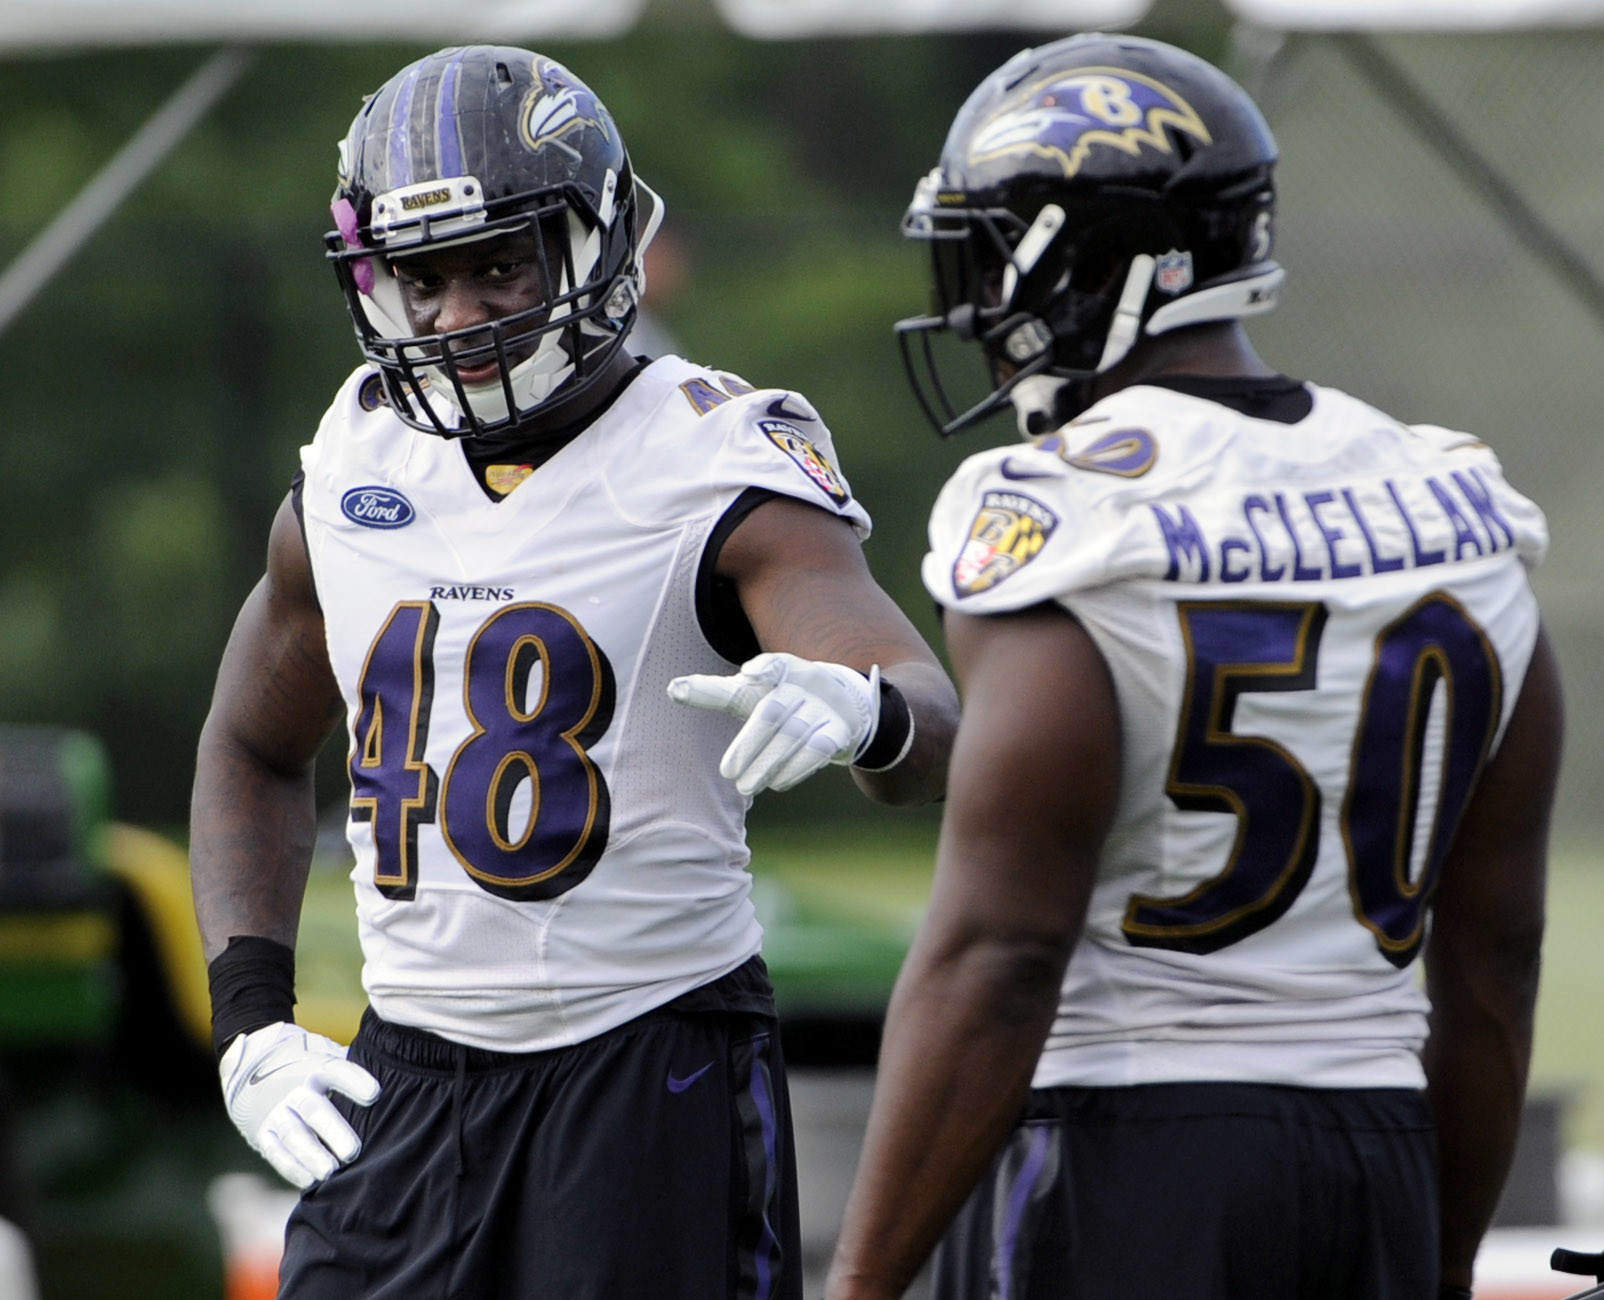 Bal-encouraged-by-first-career-start-ravens-rookie-patrick-onwuasor-knows-he-can-grow-20170103